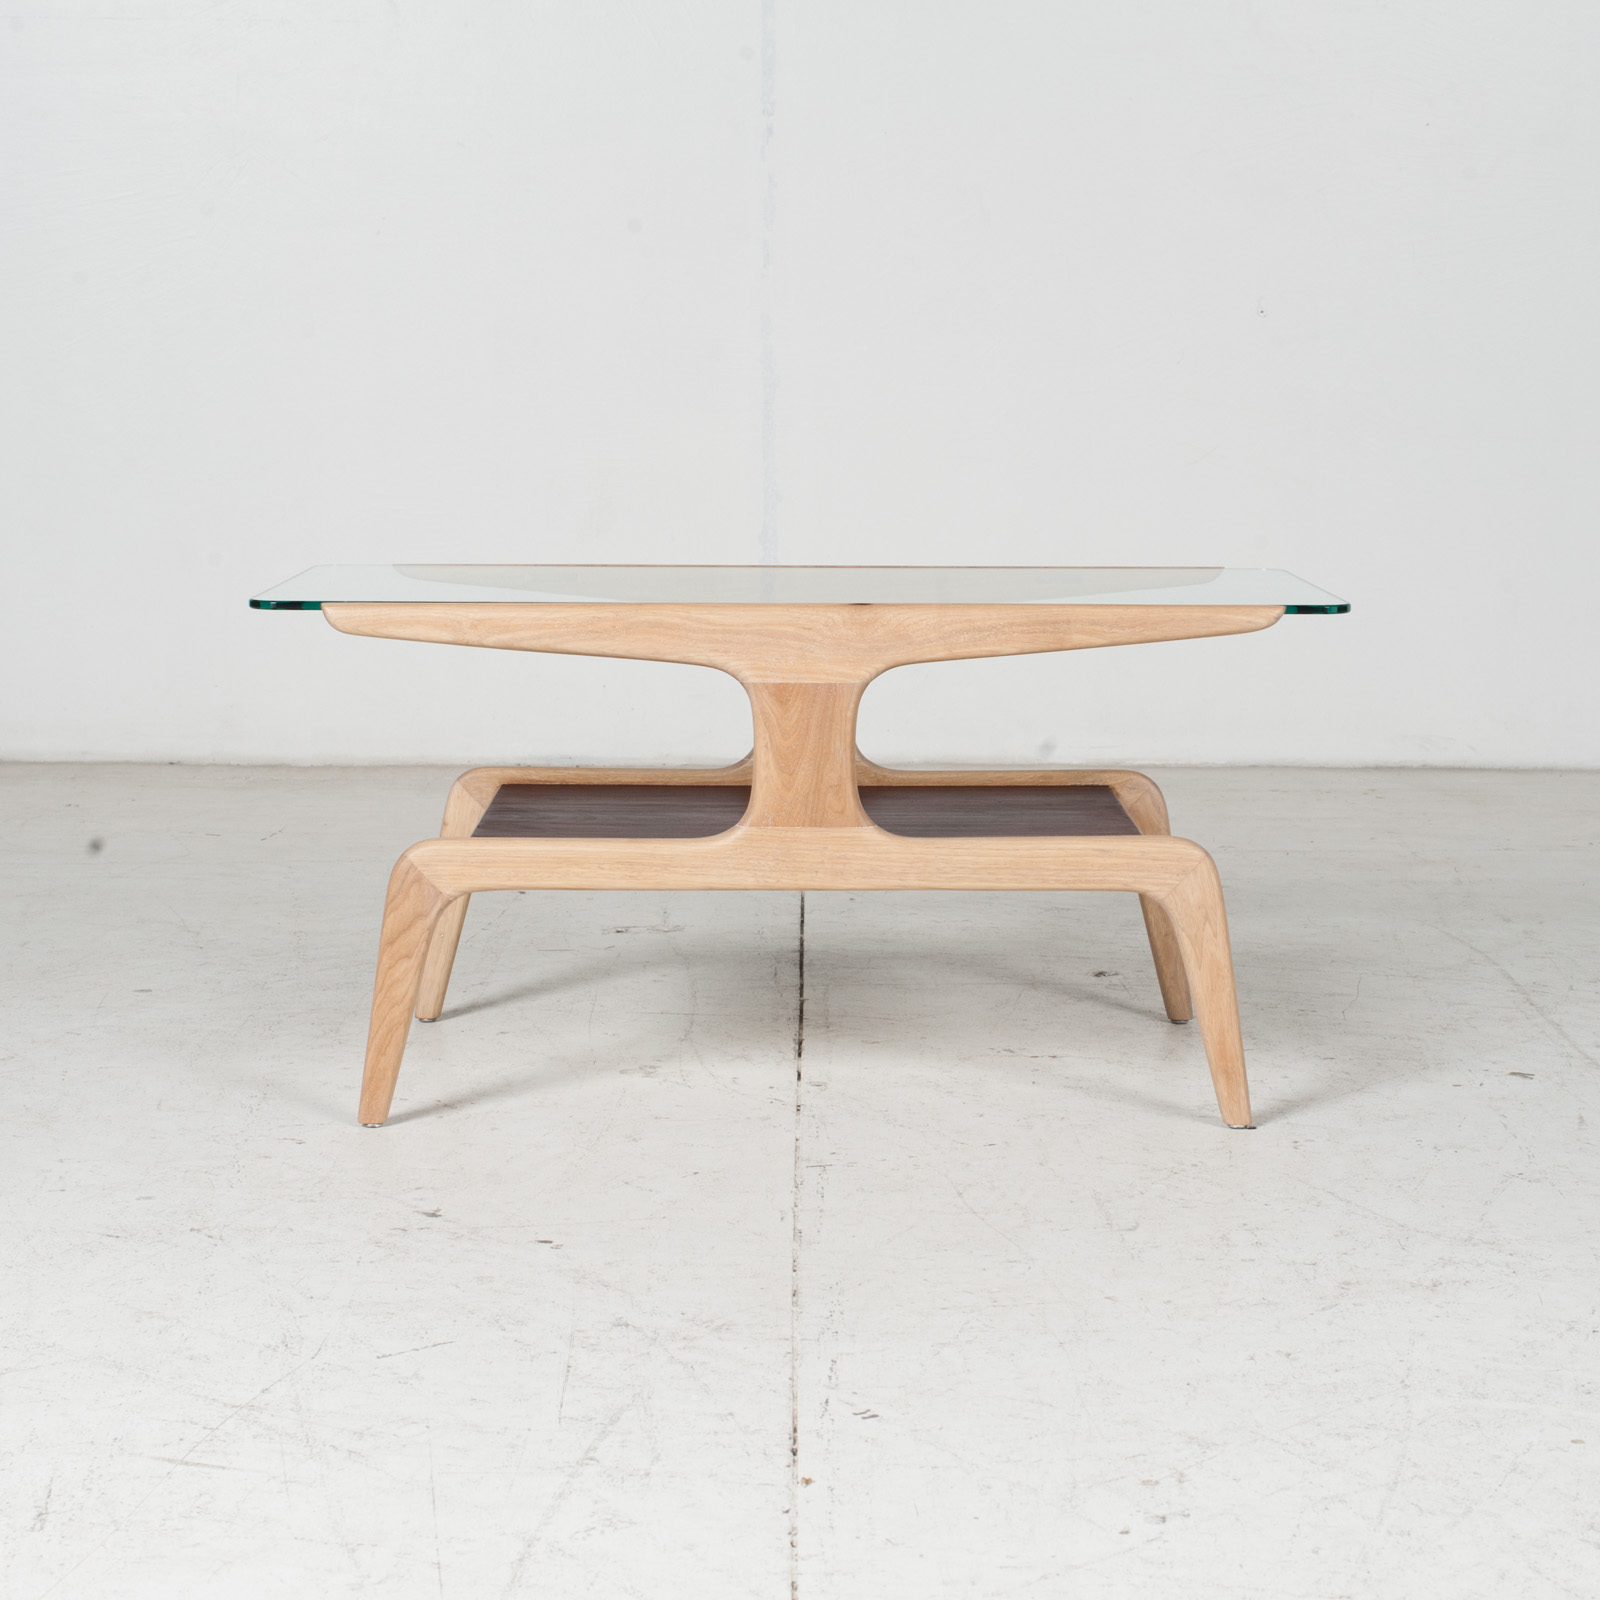 Coffee Table By Gio Ponti For Domus Nova, 1920s, Italy 1